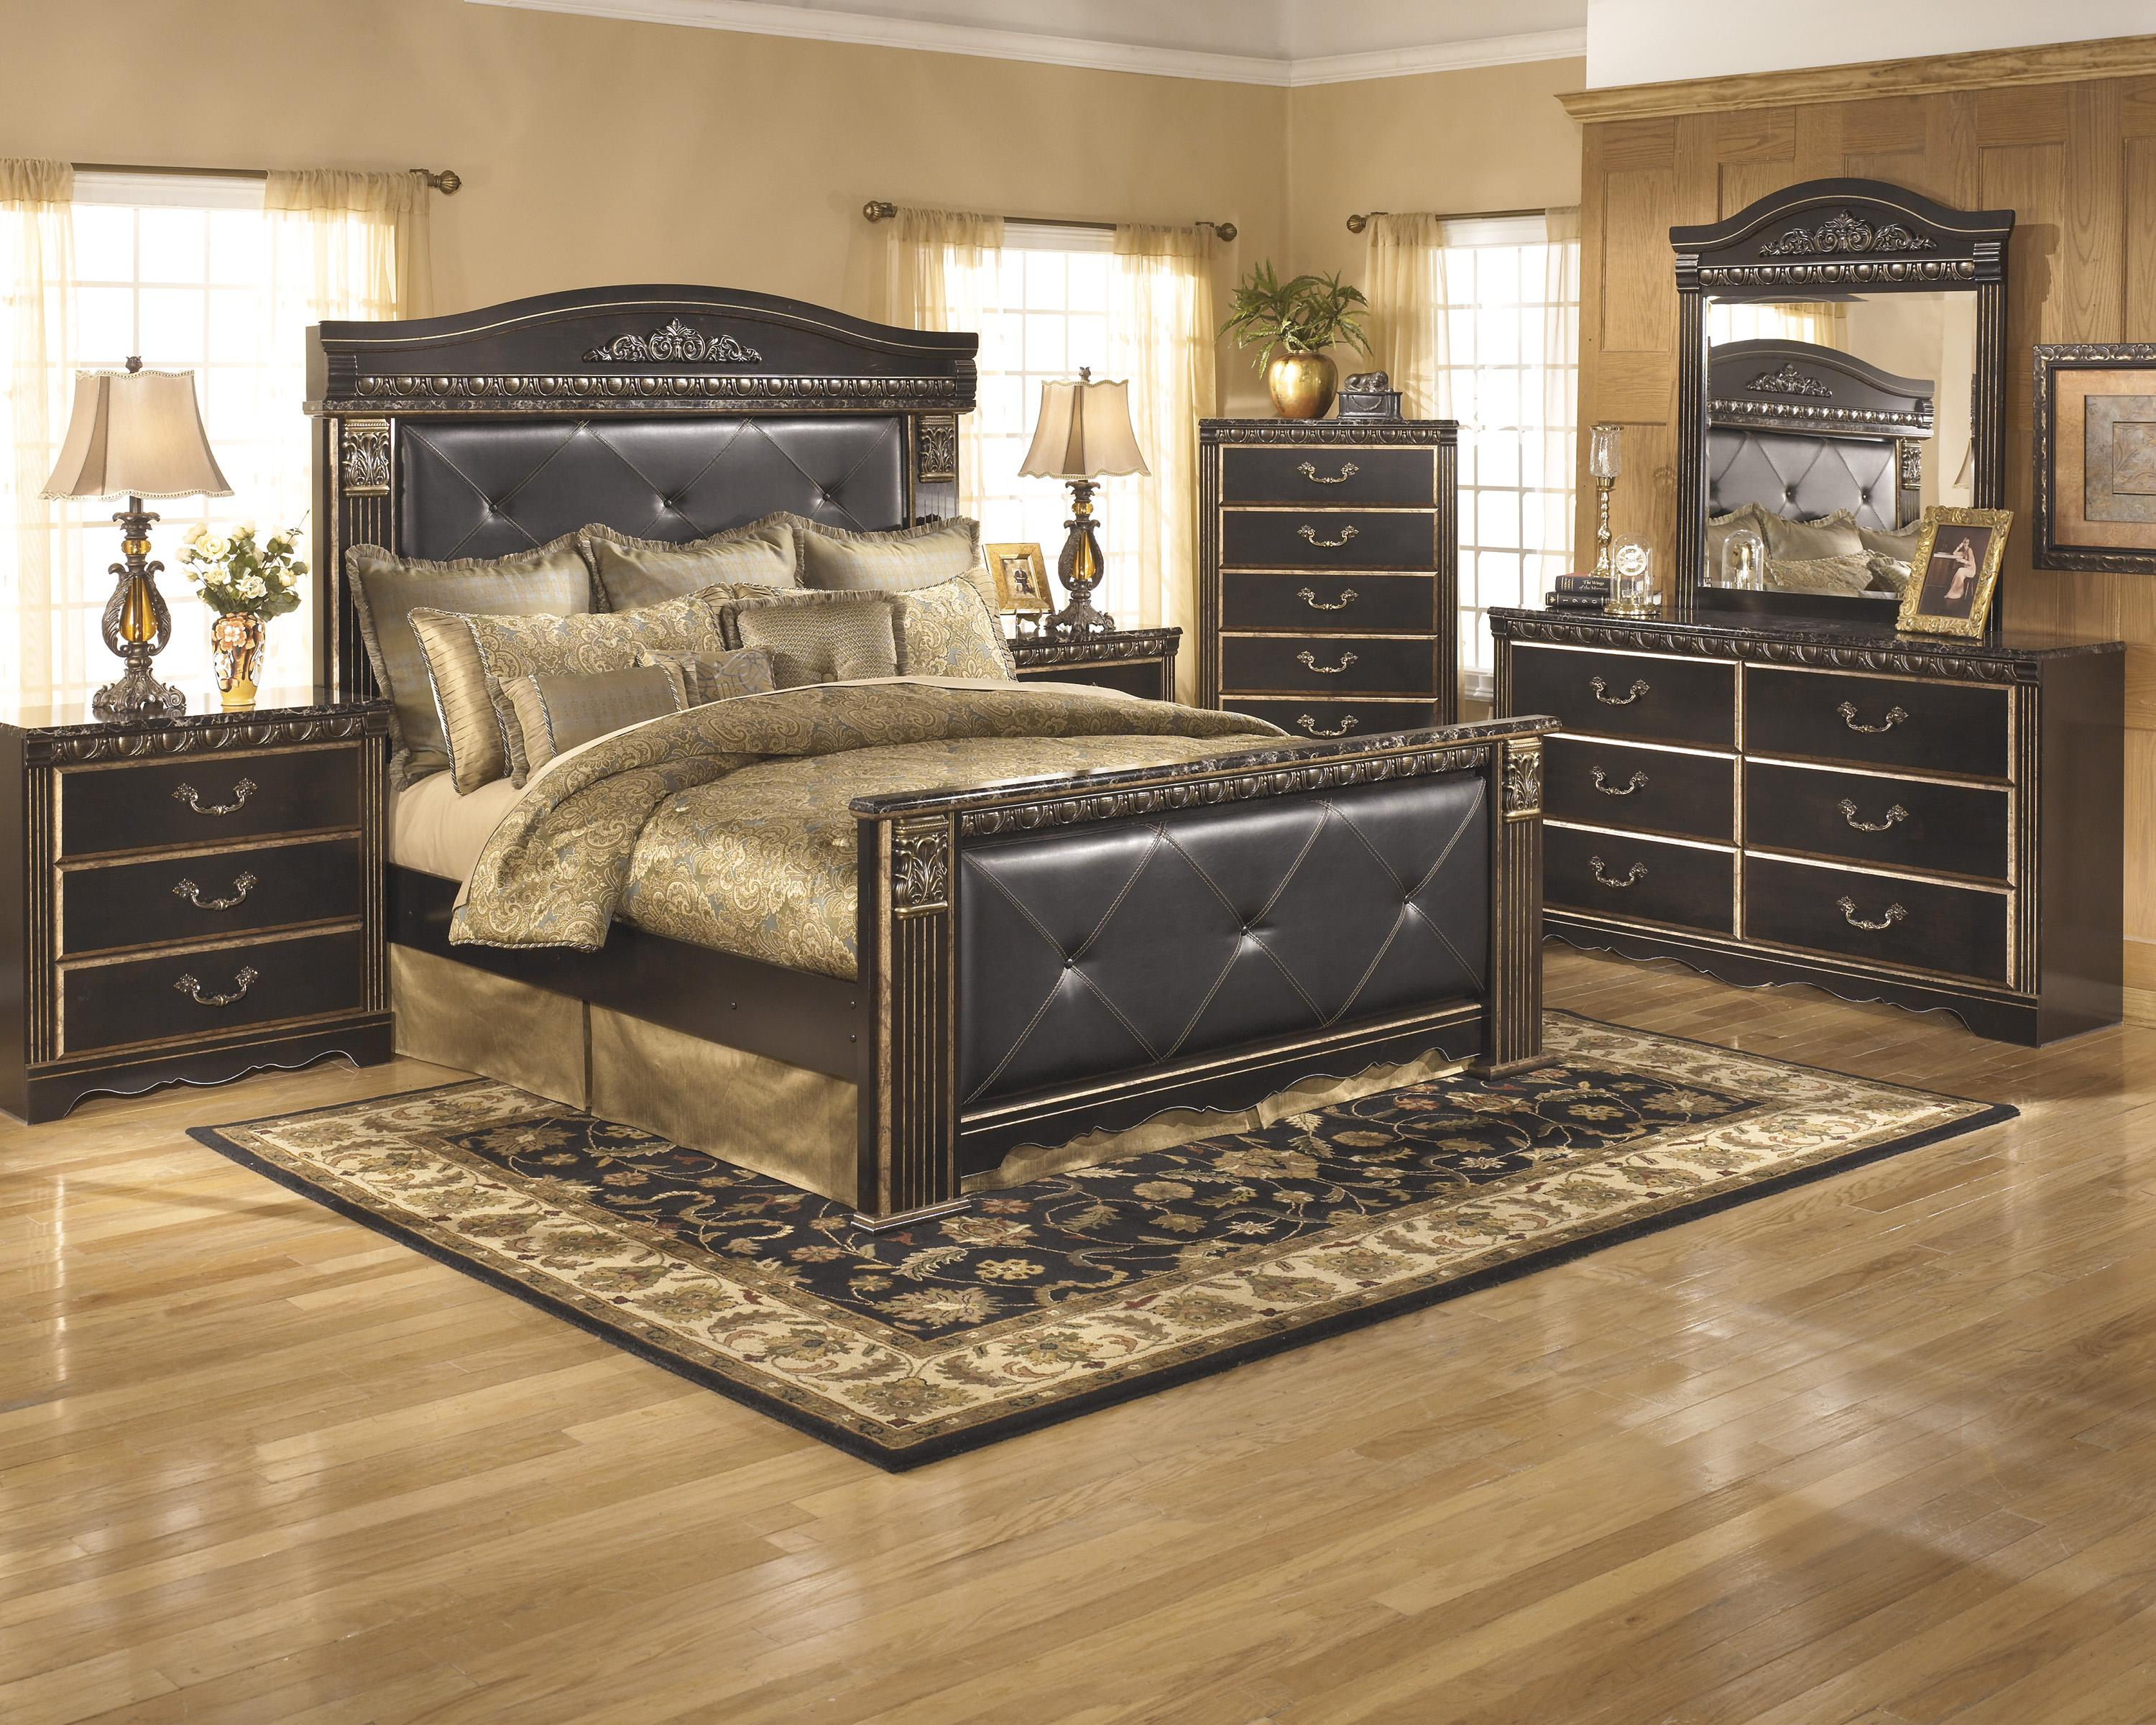 Signature Design by Ashley Coal Creek King Bedroom Group - Item Number: B175 K Bedroom Group 1